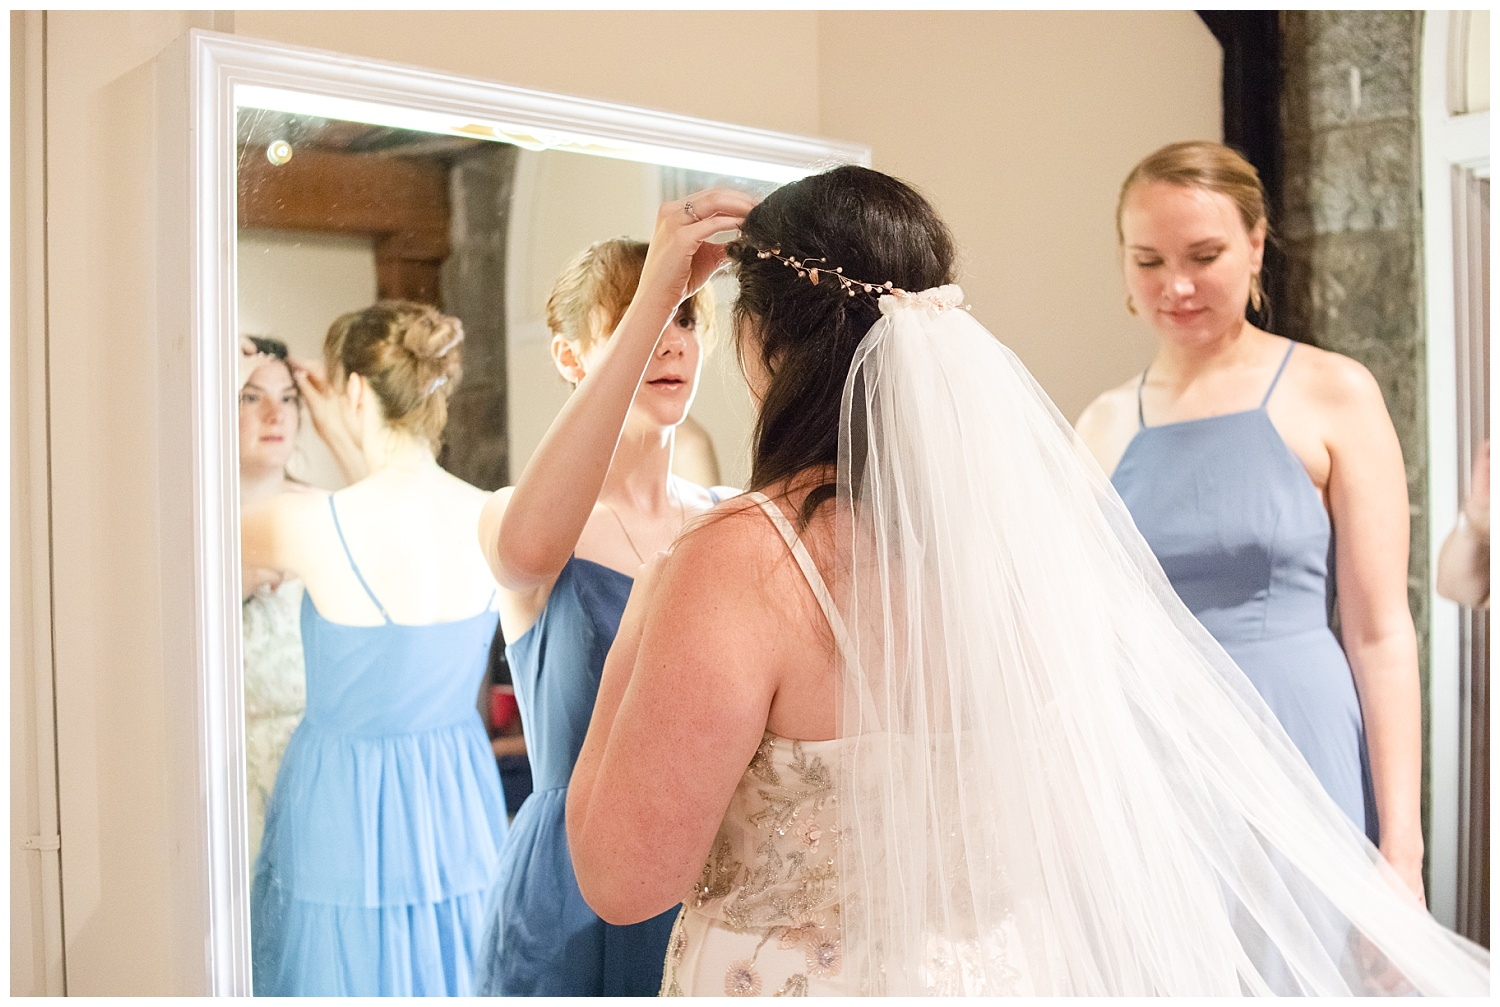 Sophia's veil was just one of the heirlooms she had with her on her wedding day. The same veil that belongs to her sweet Momma.